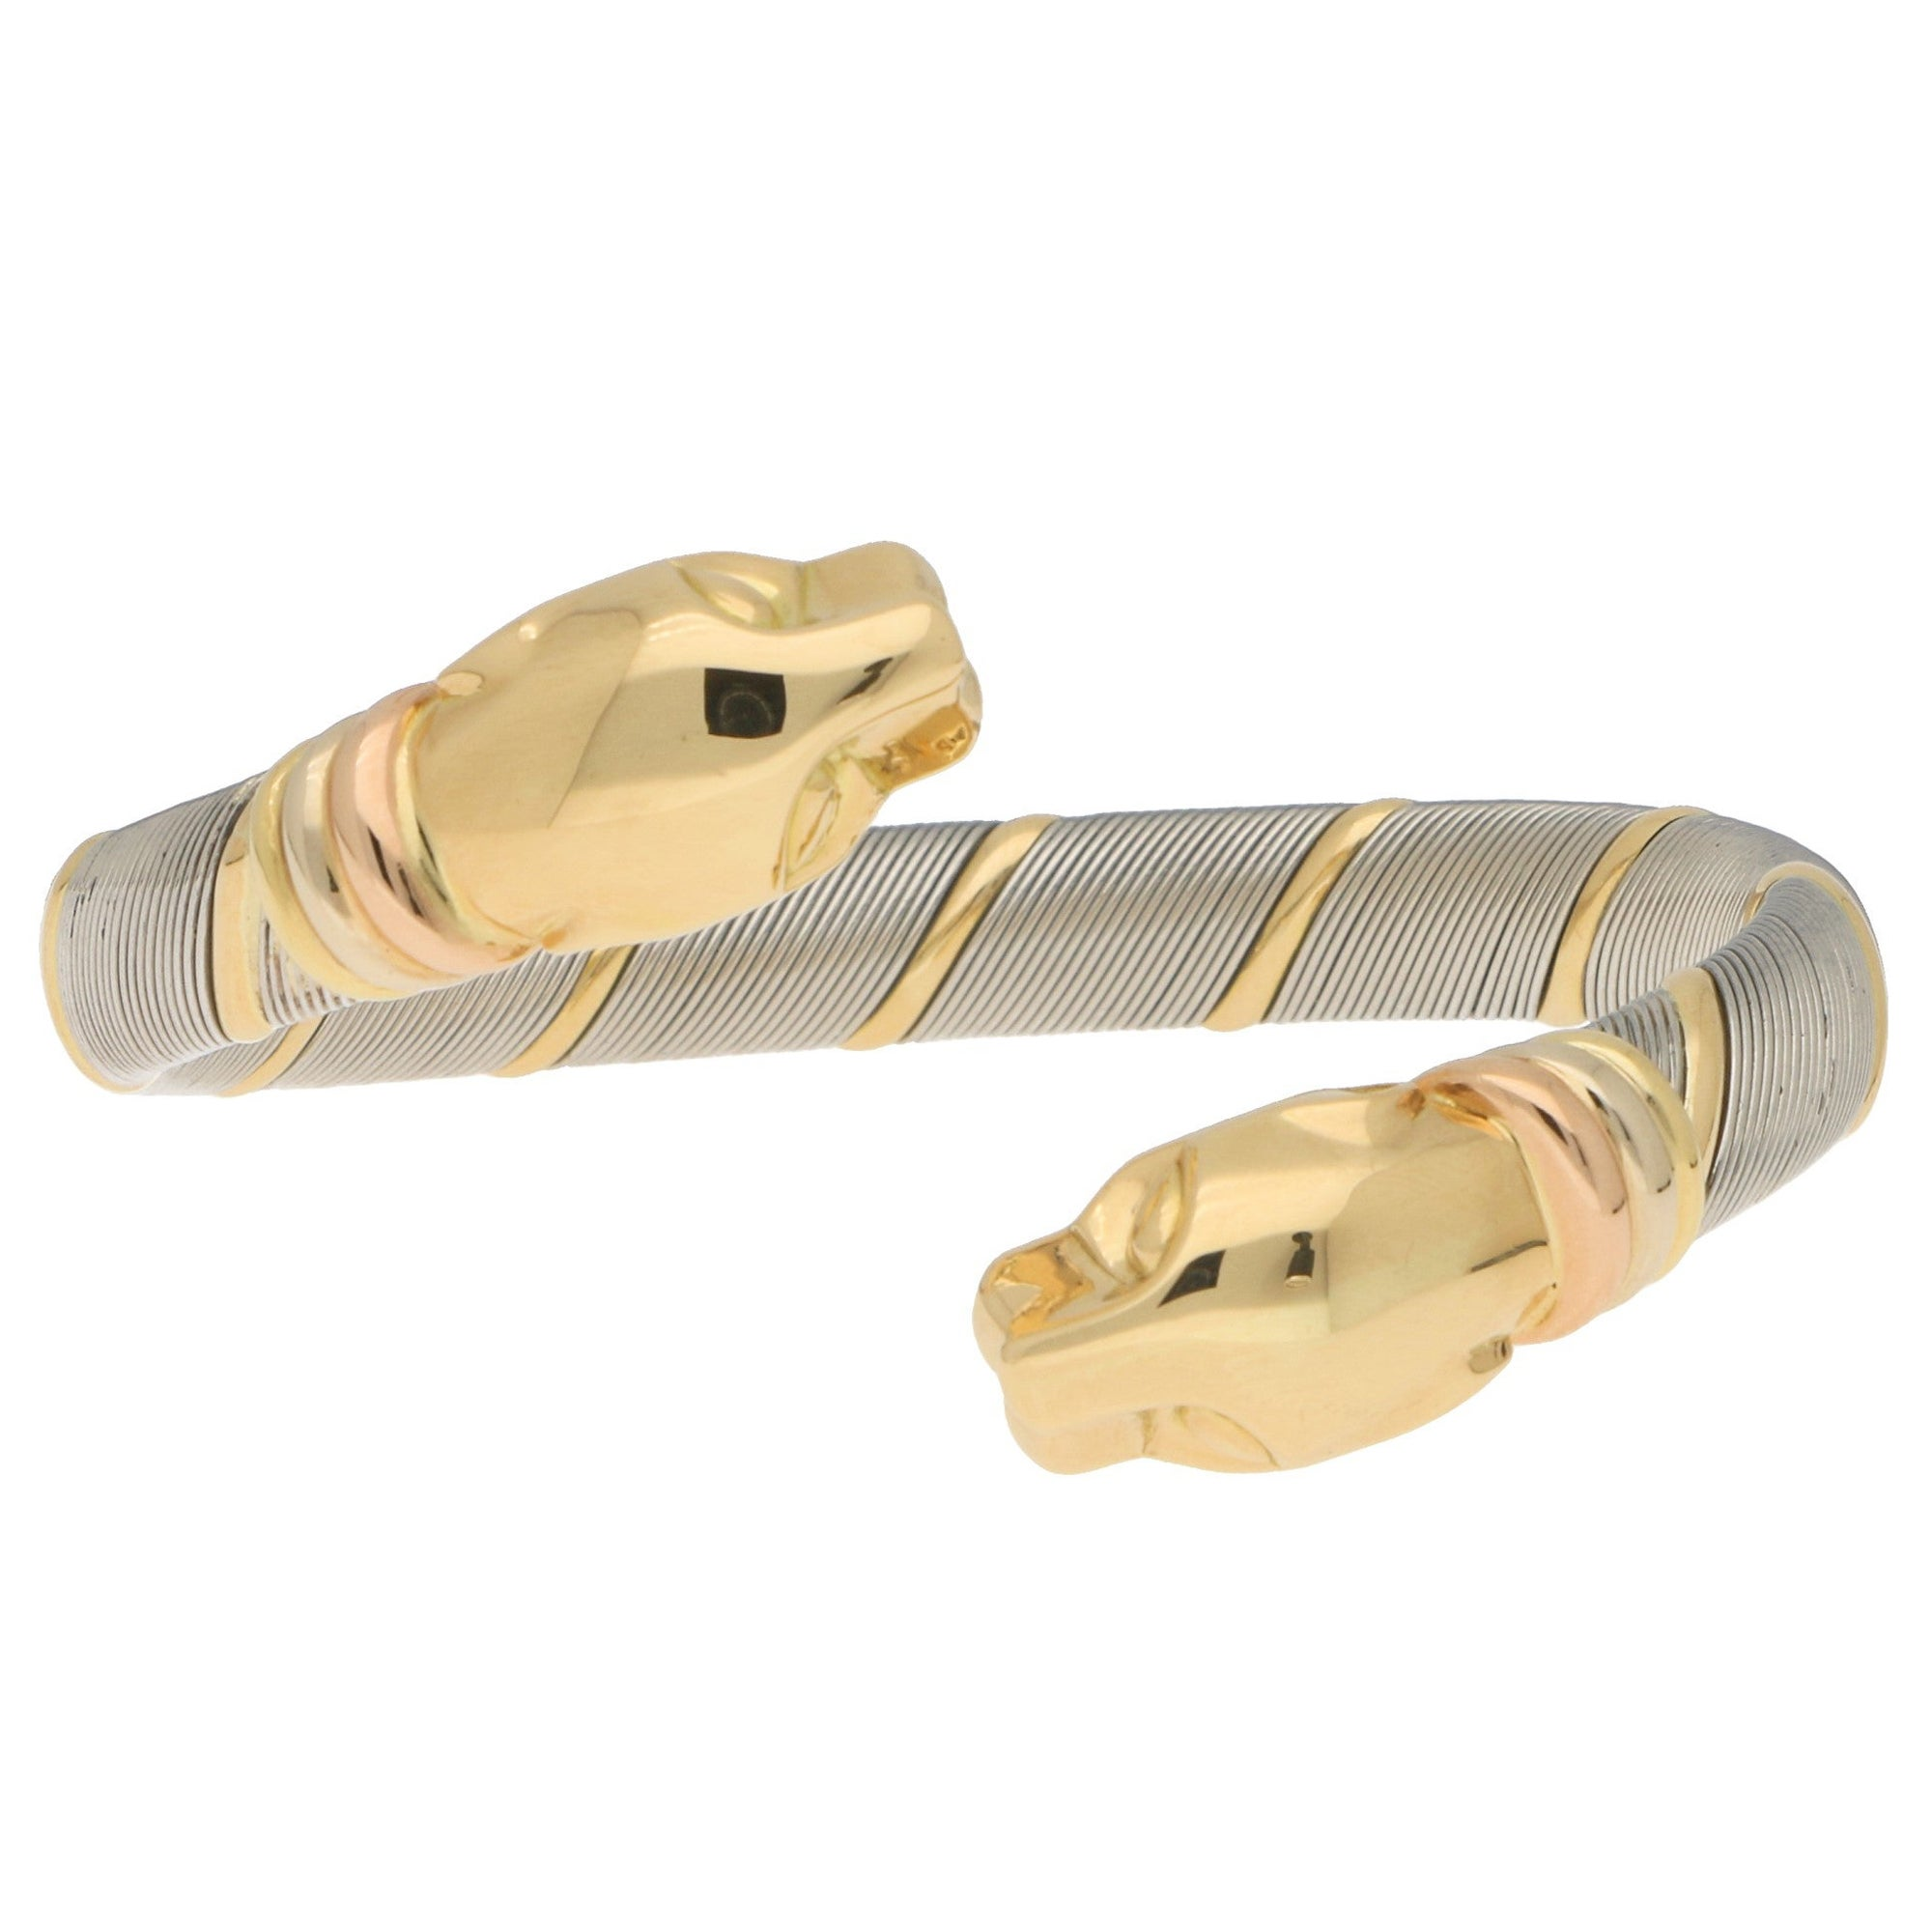 Cartier Panthère Double Headed Bangle in Stainless Steel and 18k Yellow Gold